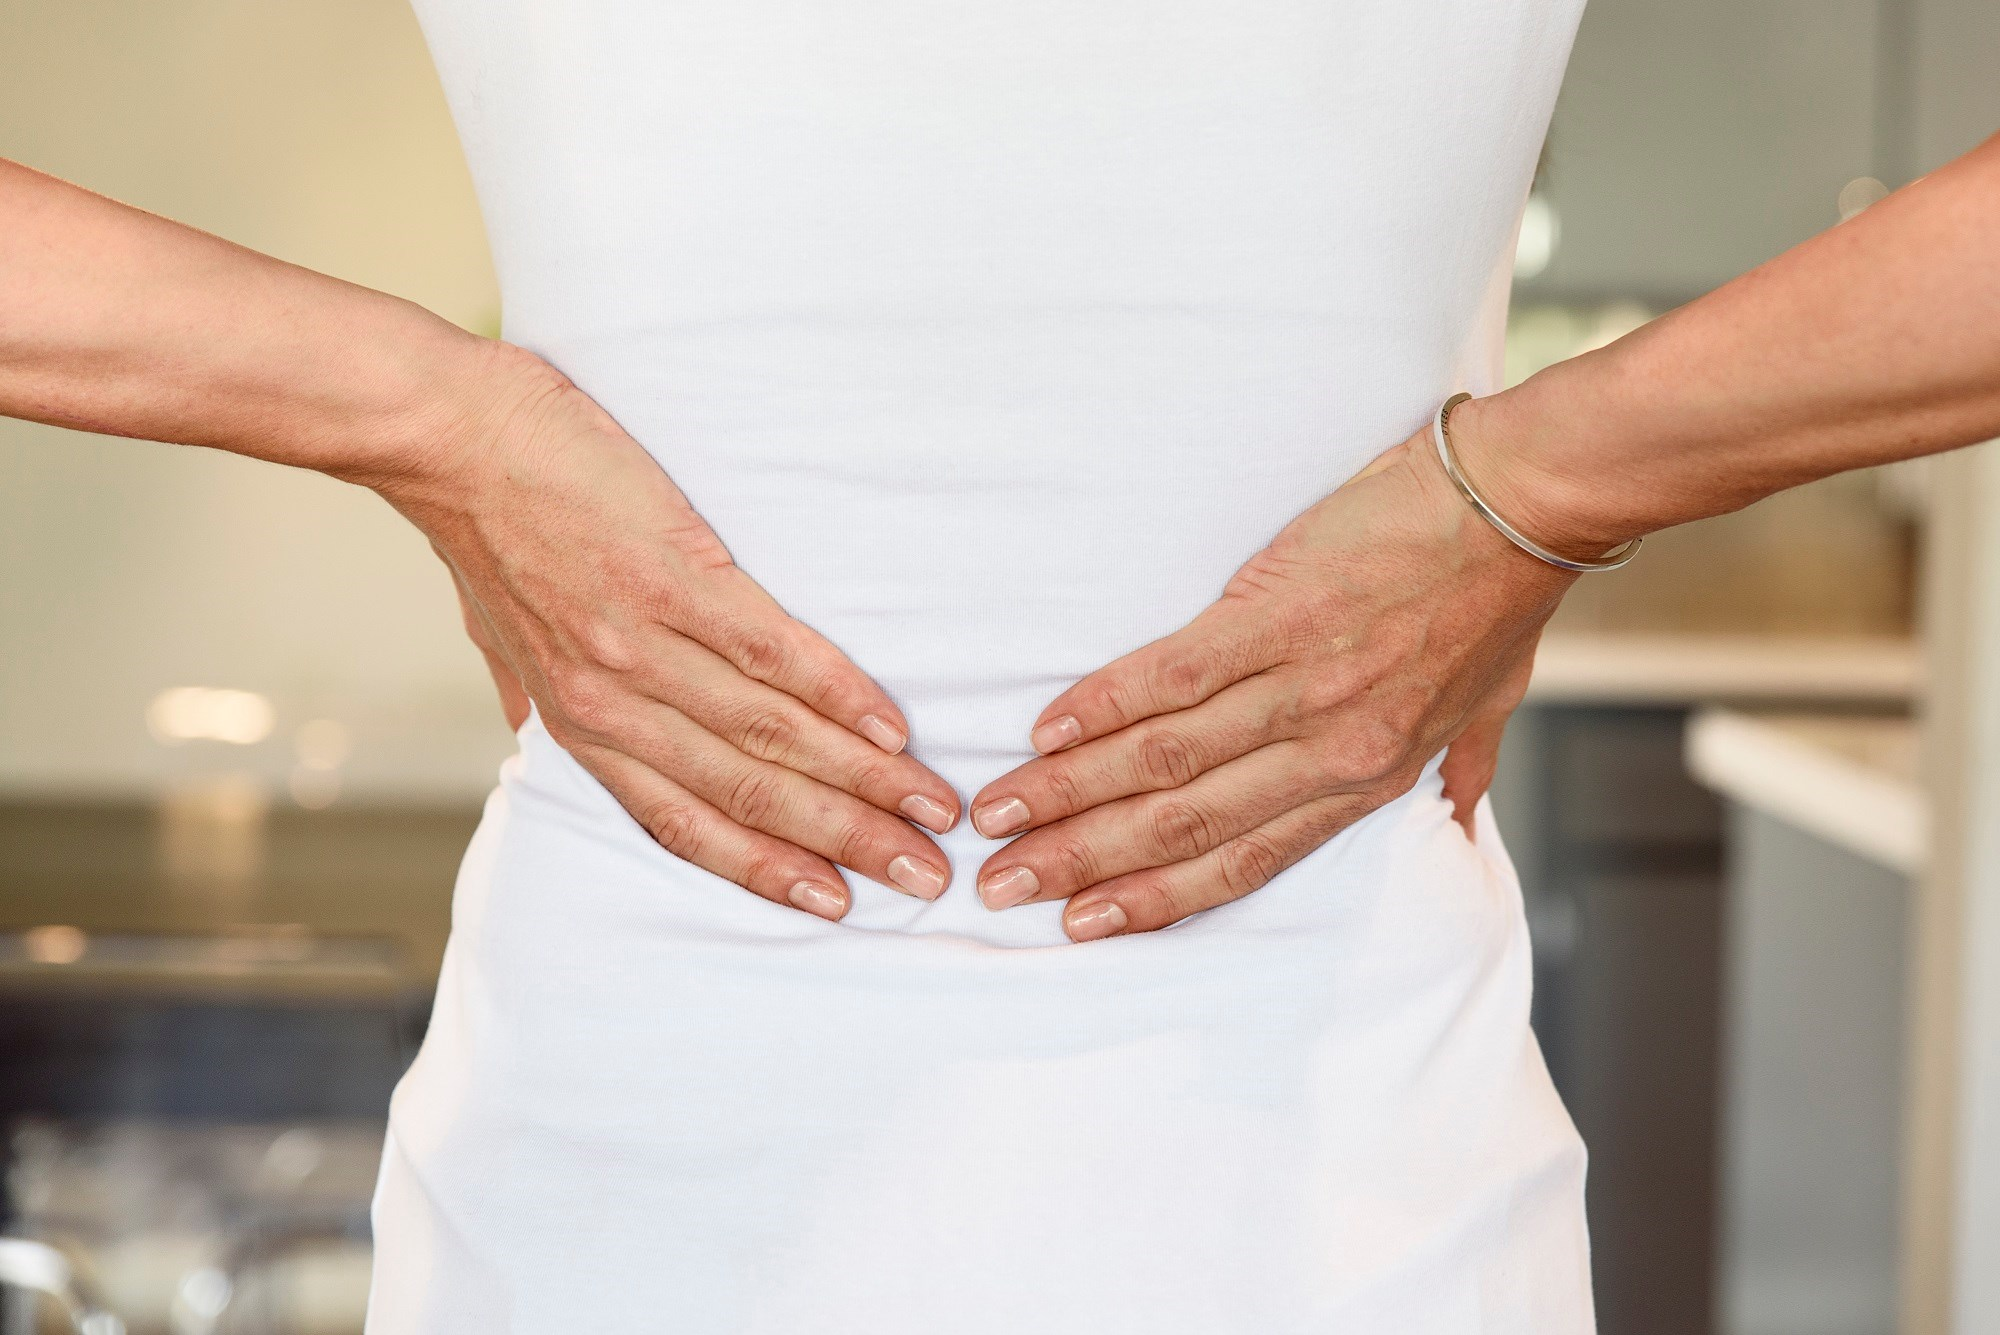 Researchers identified Black and non-Hispanic White patients with prominent chronic low back pain for at least 6 months with a pain intensity ranging from moderate to severe.